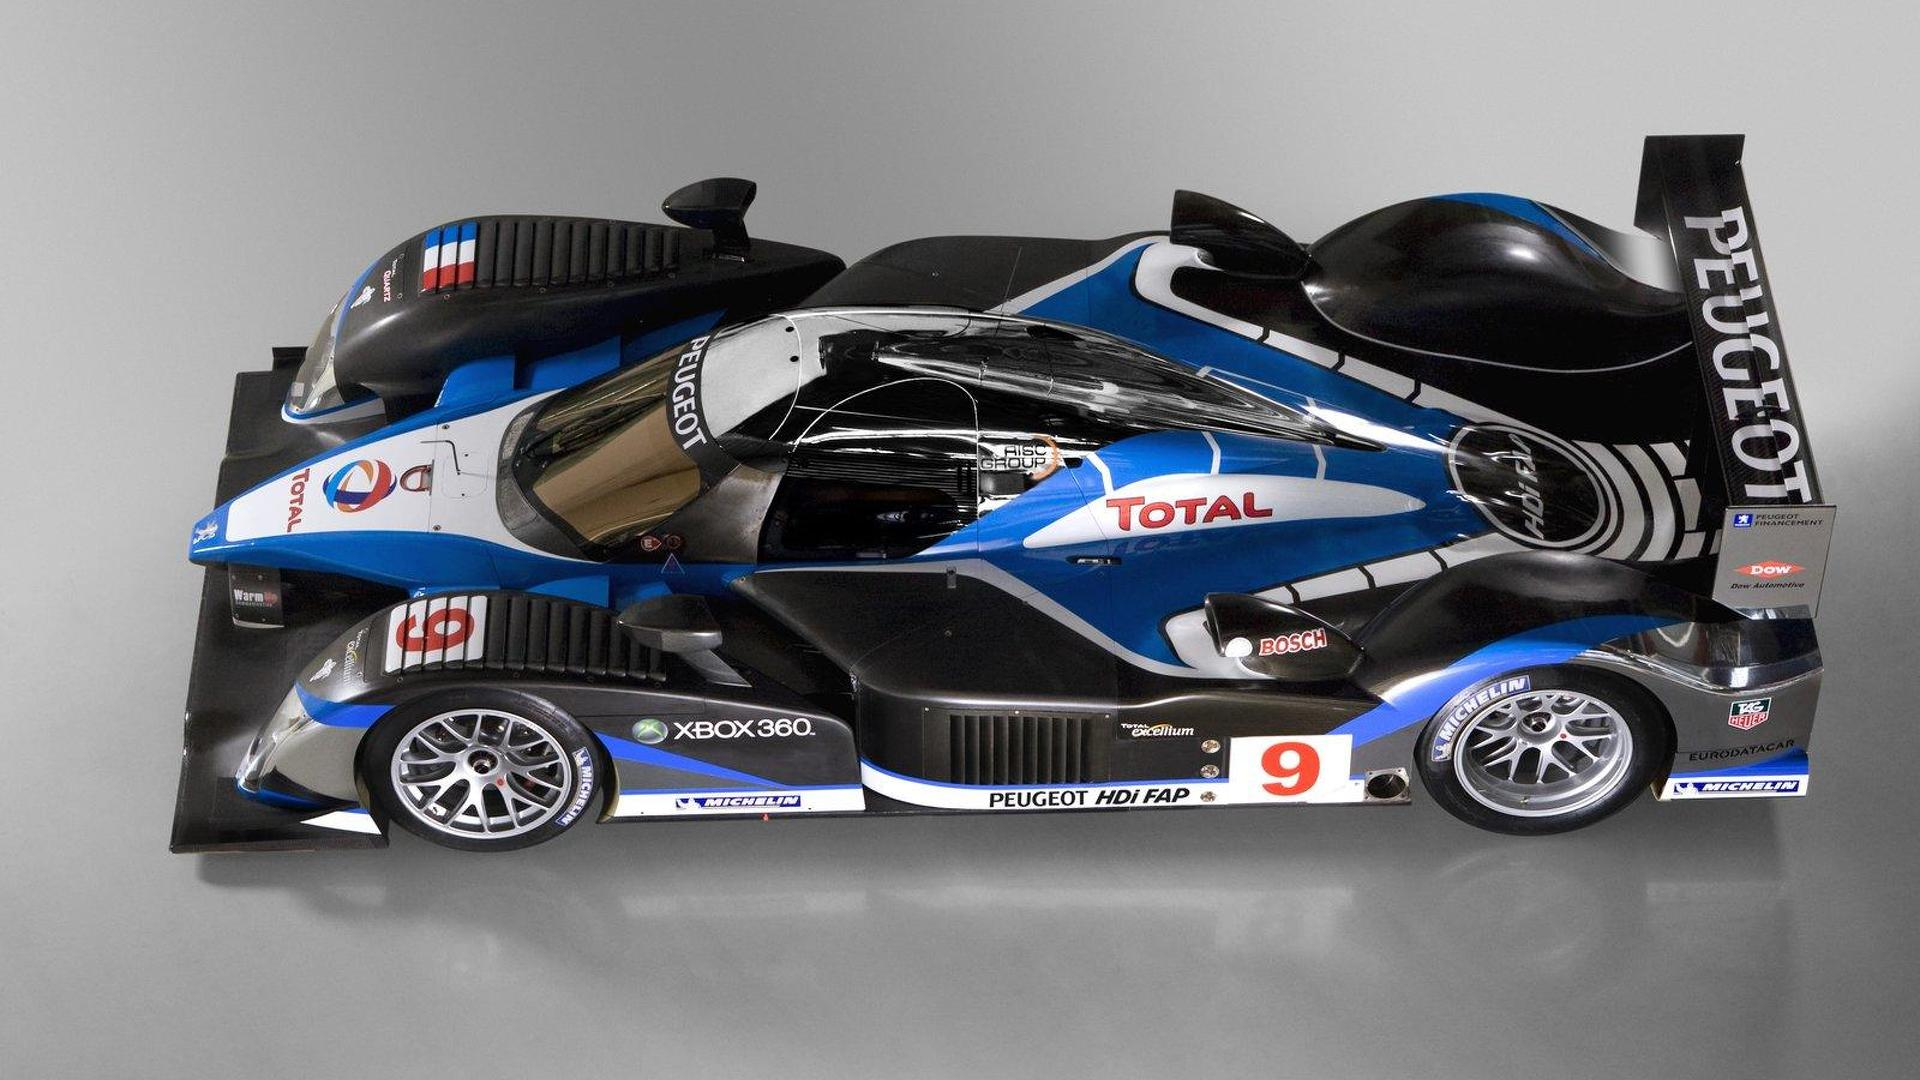 Peugeot's 2022 WEC entry should result in new production hypercar